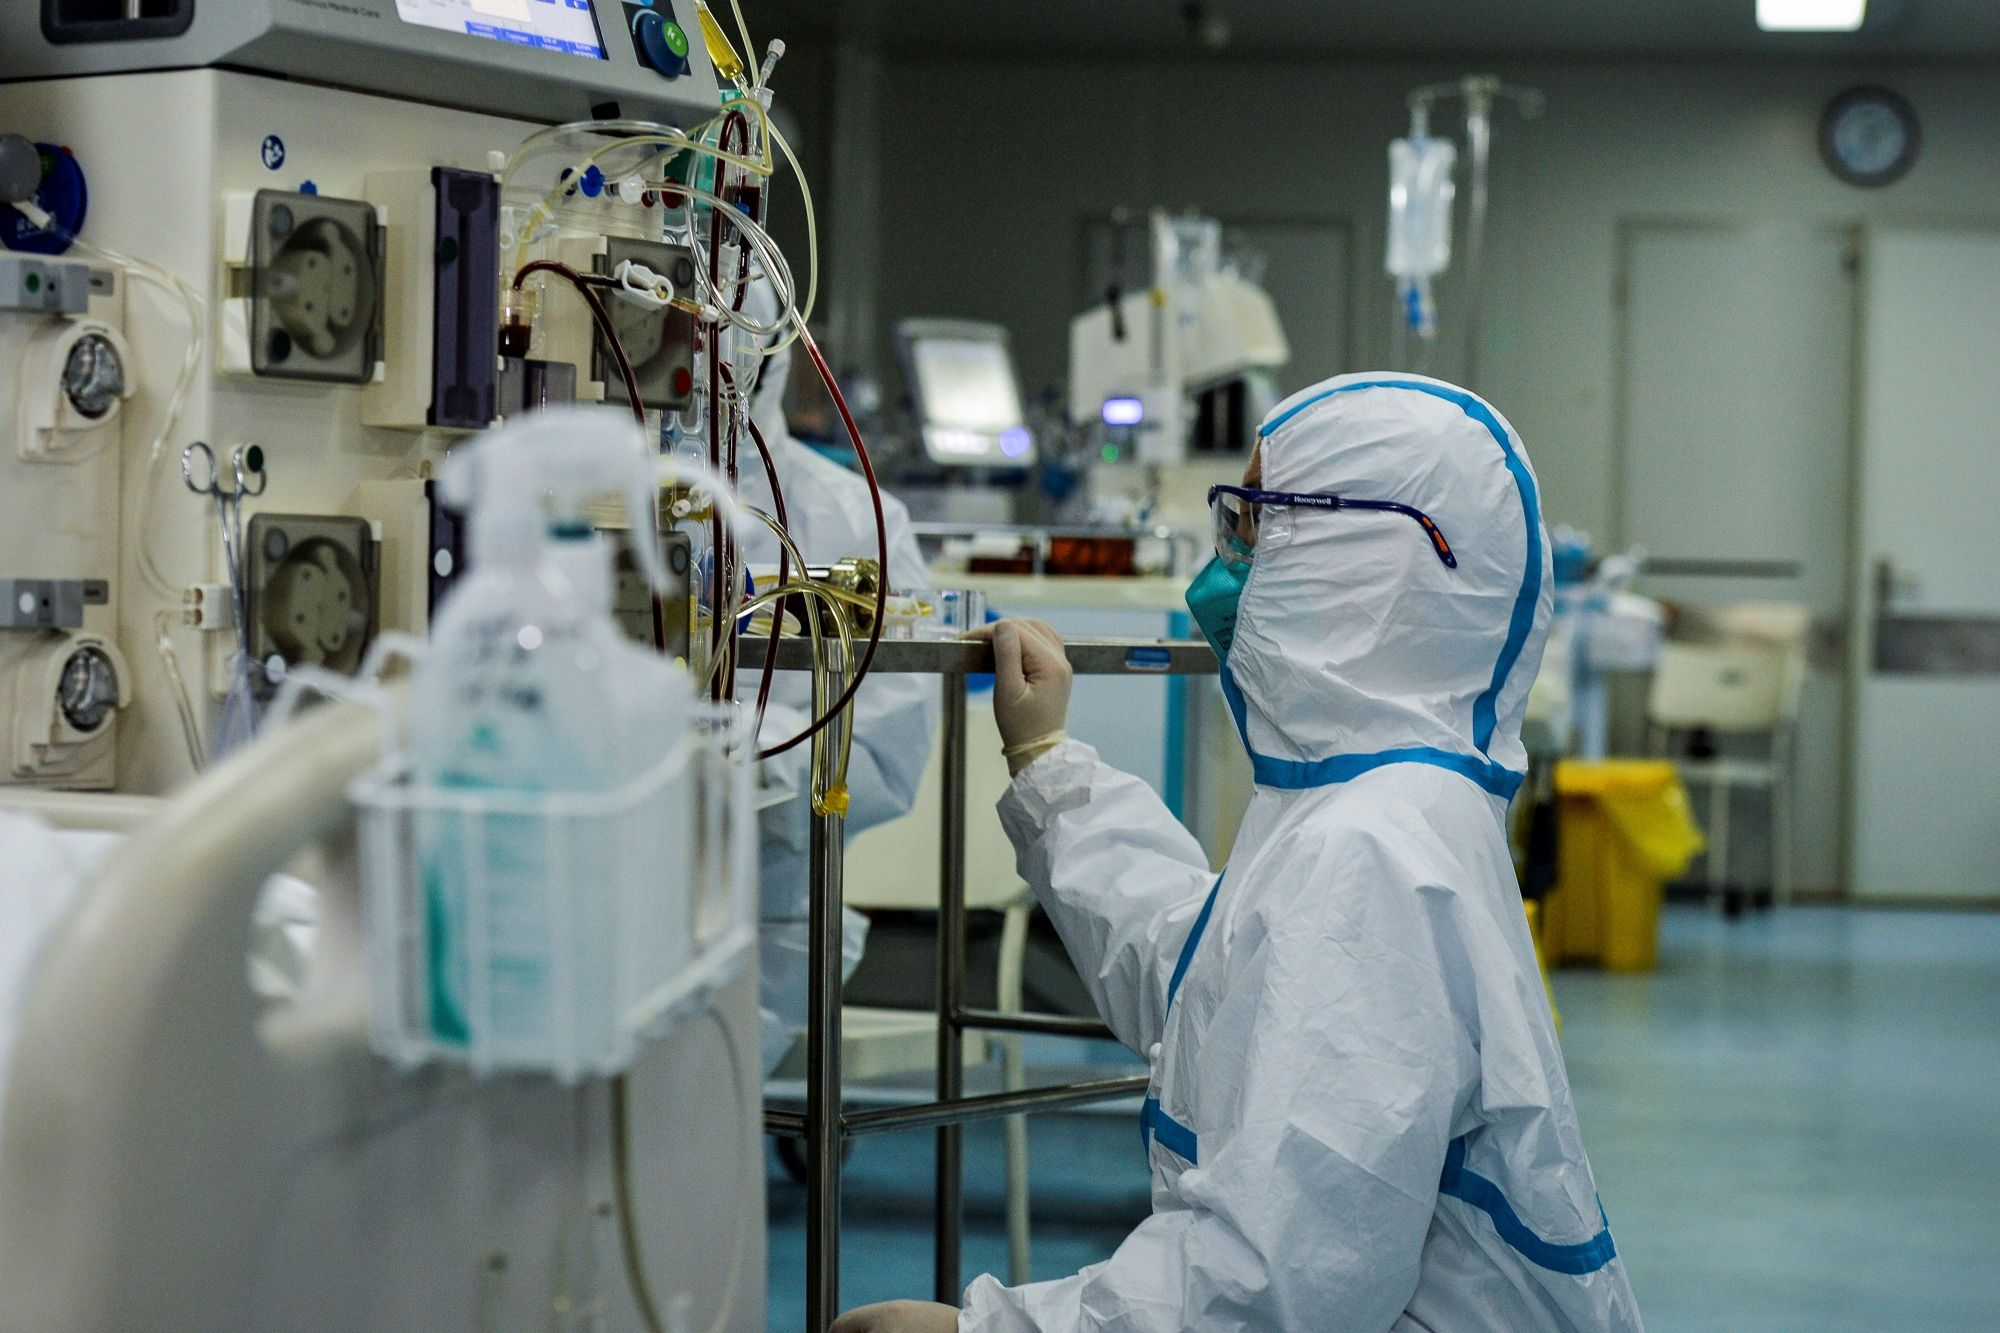 A doctor operates a machine as medical staff treat patients infected with the COVID-19 coronavirus at a hospital in Wuhan in China's central Hubei province on Feb. 24, 2020. (STR/AFP via Getty Images)